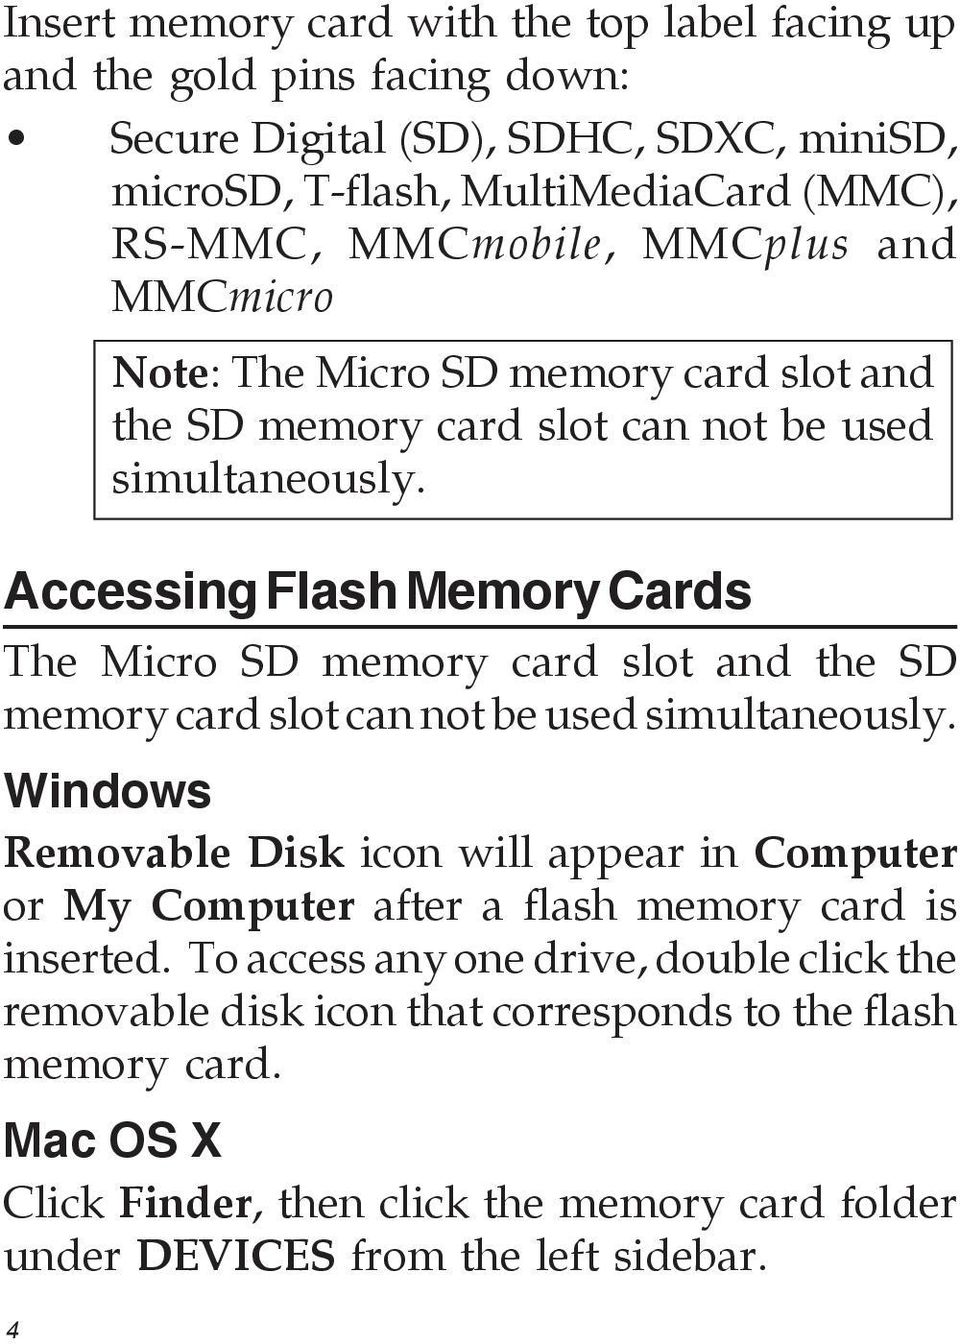 Accessing Flash Memory Cards The Micro SD memory card slot and the SD memory card slot can not be used simultaneously.